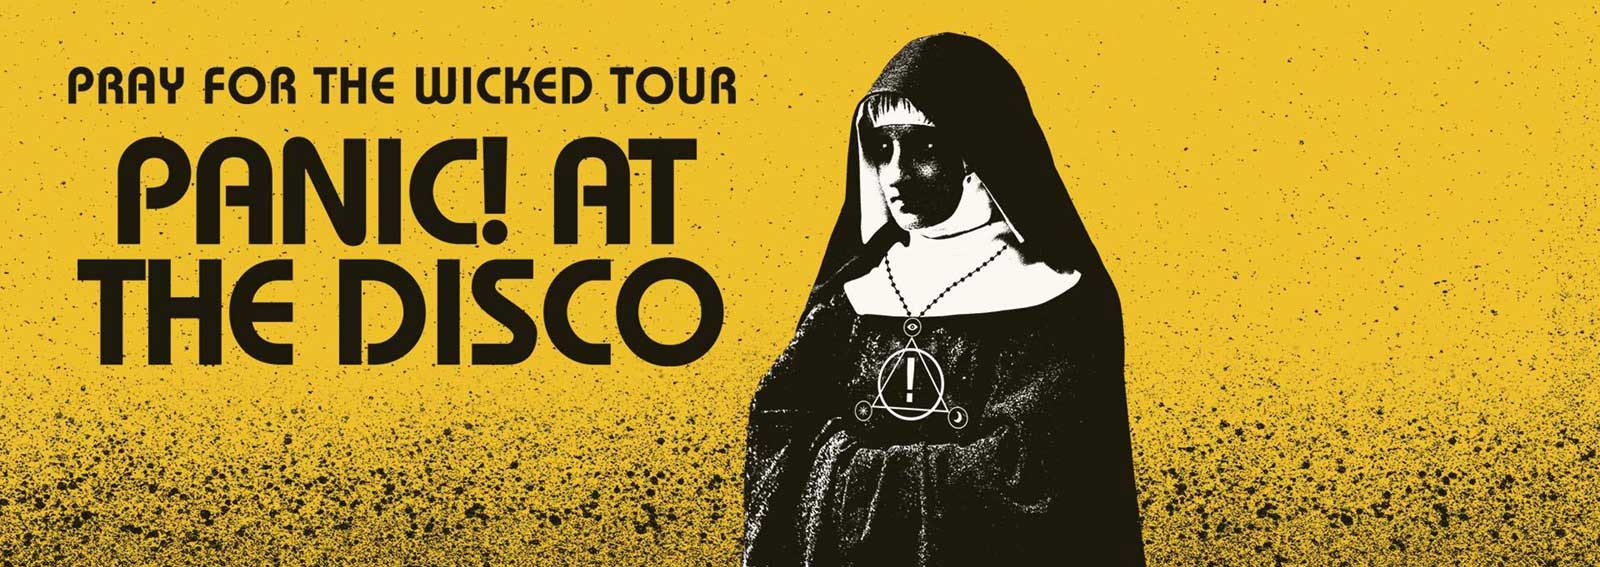 Panic_at_the_Disco_1600x567.jpg